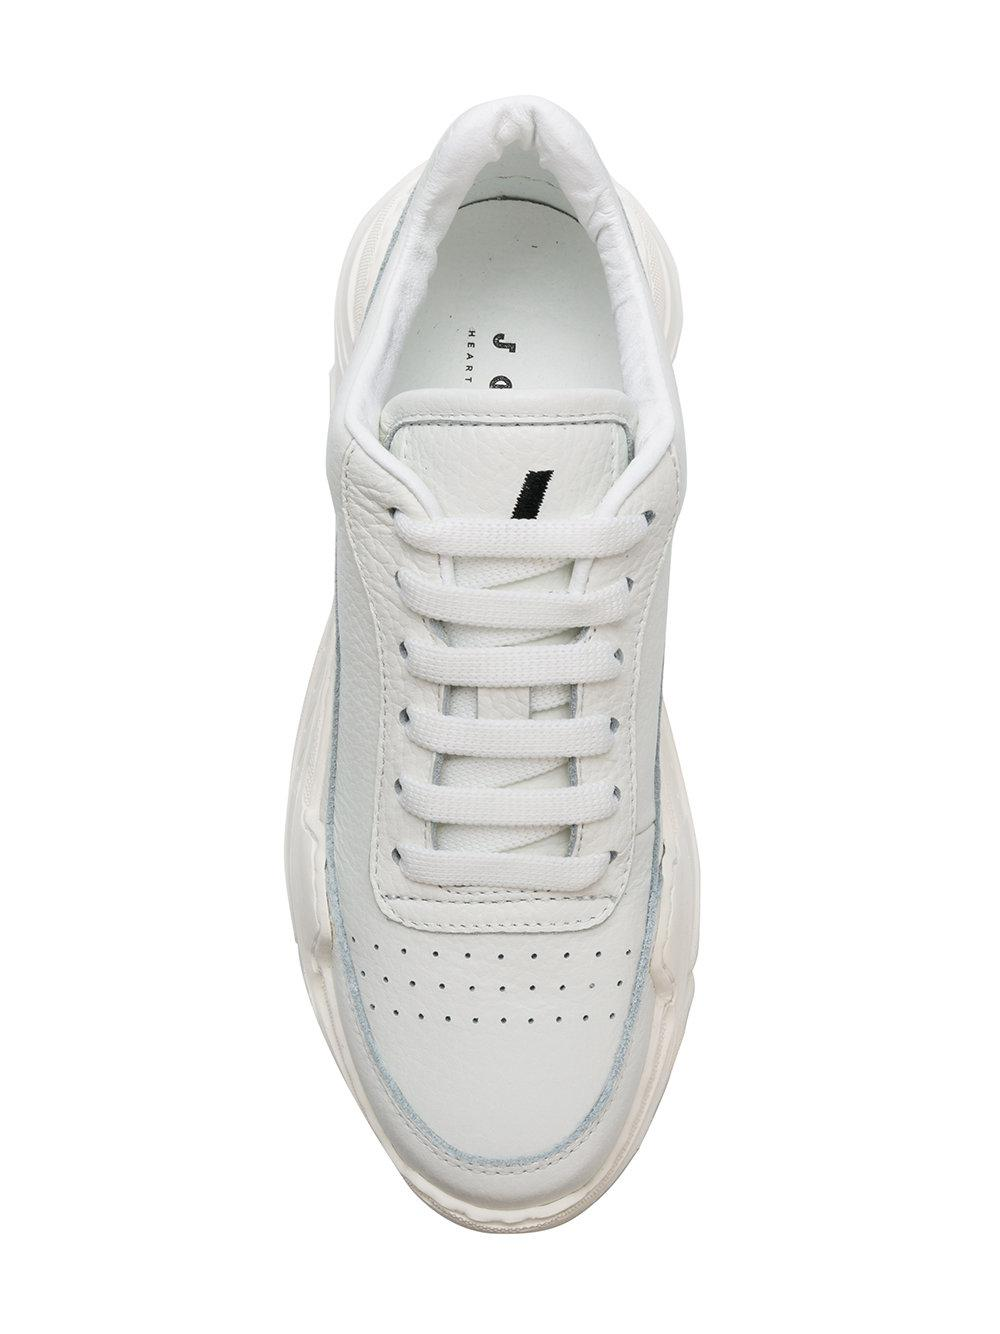 Joshua Sanders Leather Chunky Sole Sneakers in White